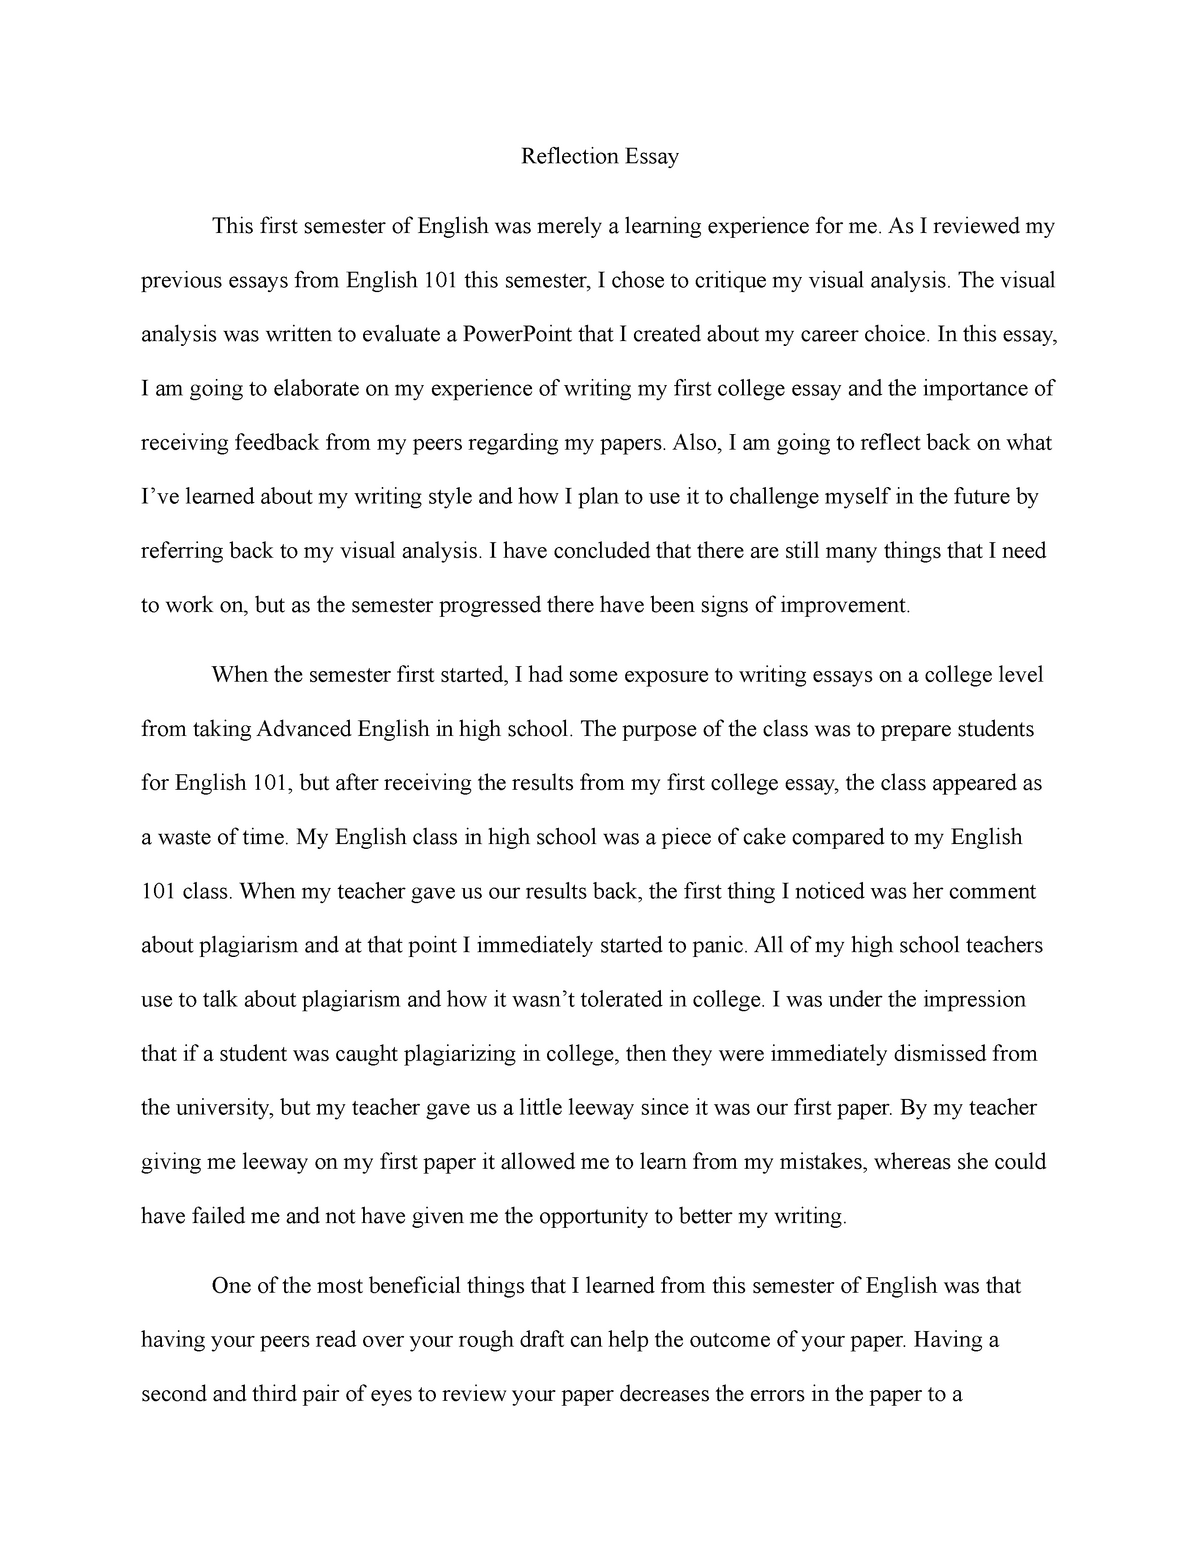 How To Write An Essay Proposal Example  Romeo And Juliet English Essay also Essay Thesis Example Reflection Essay  Grade A  Eh  English Composition I  English As A World Language Essay